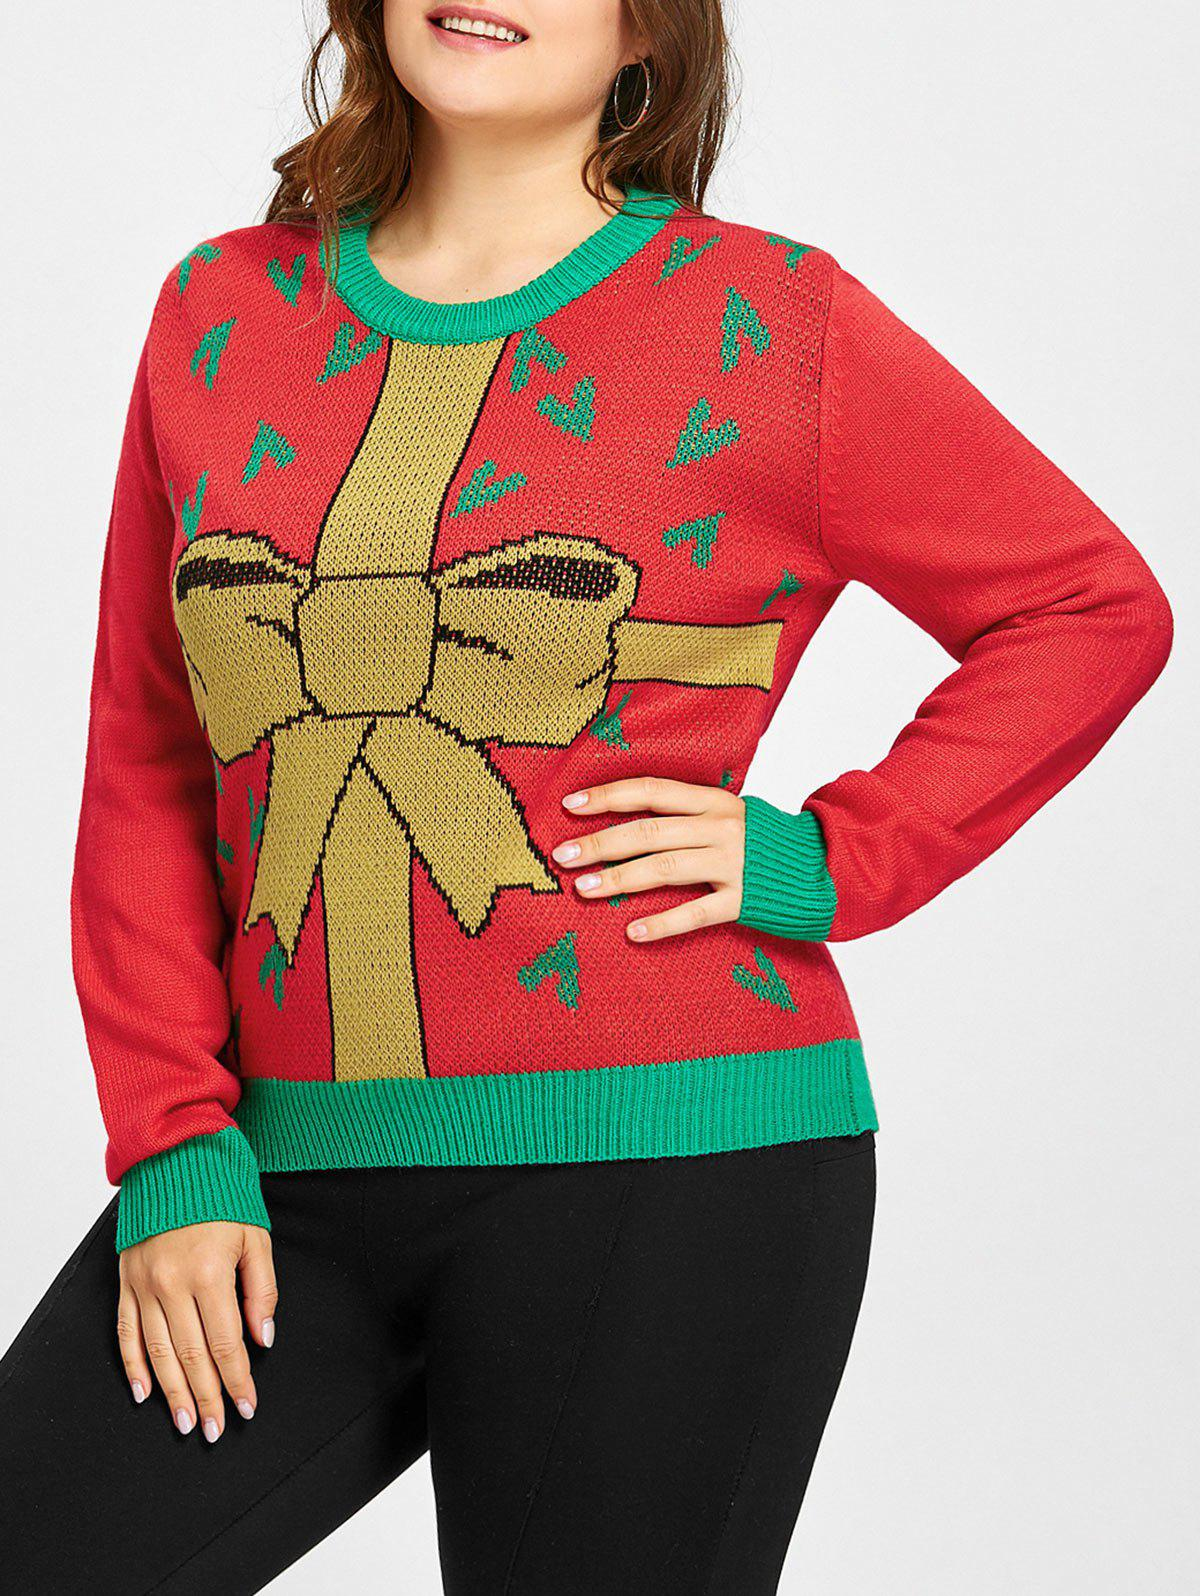 Outfit Plus Size Christmas Gift Bowknot Jacquard Sweater